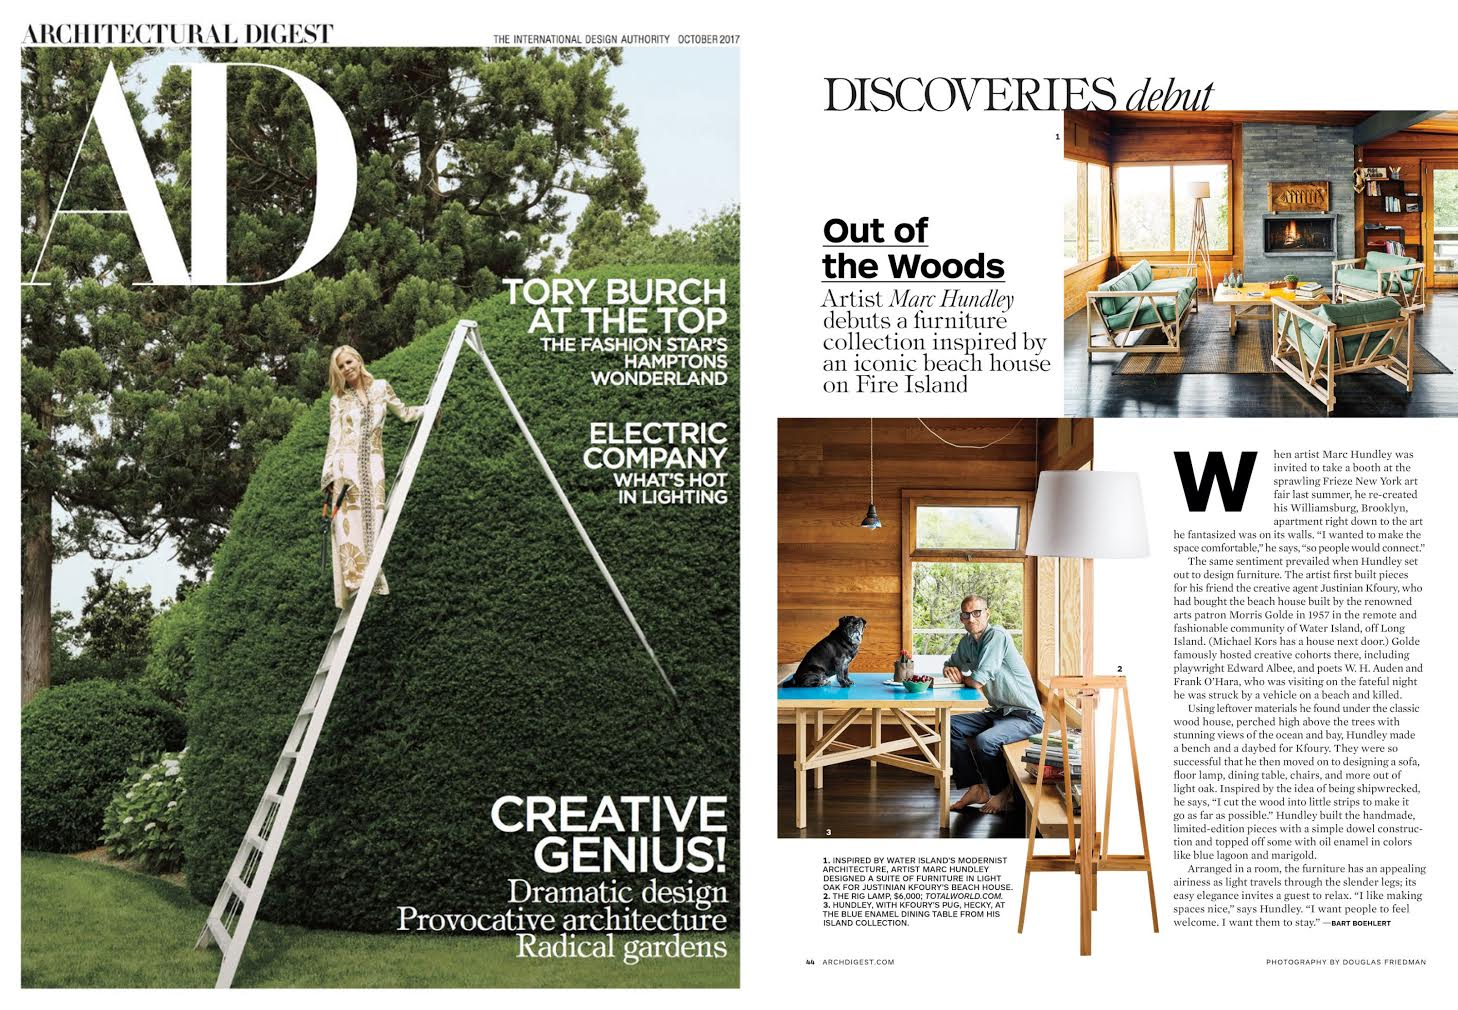 Architectural digest bart boehlert spread